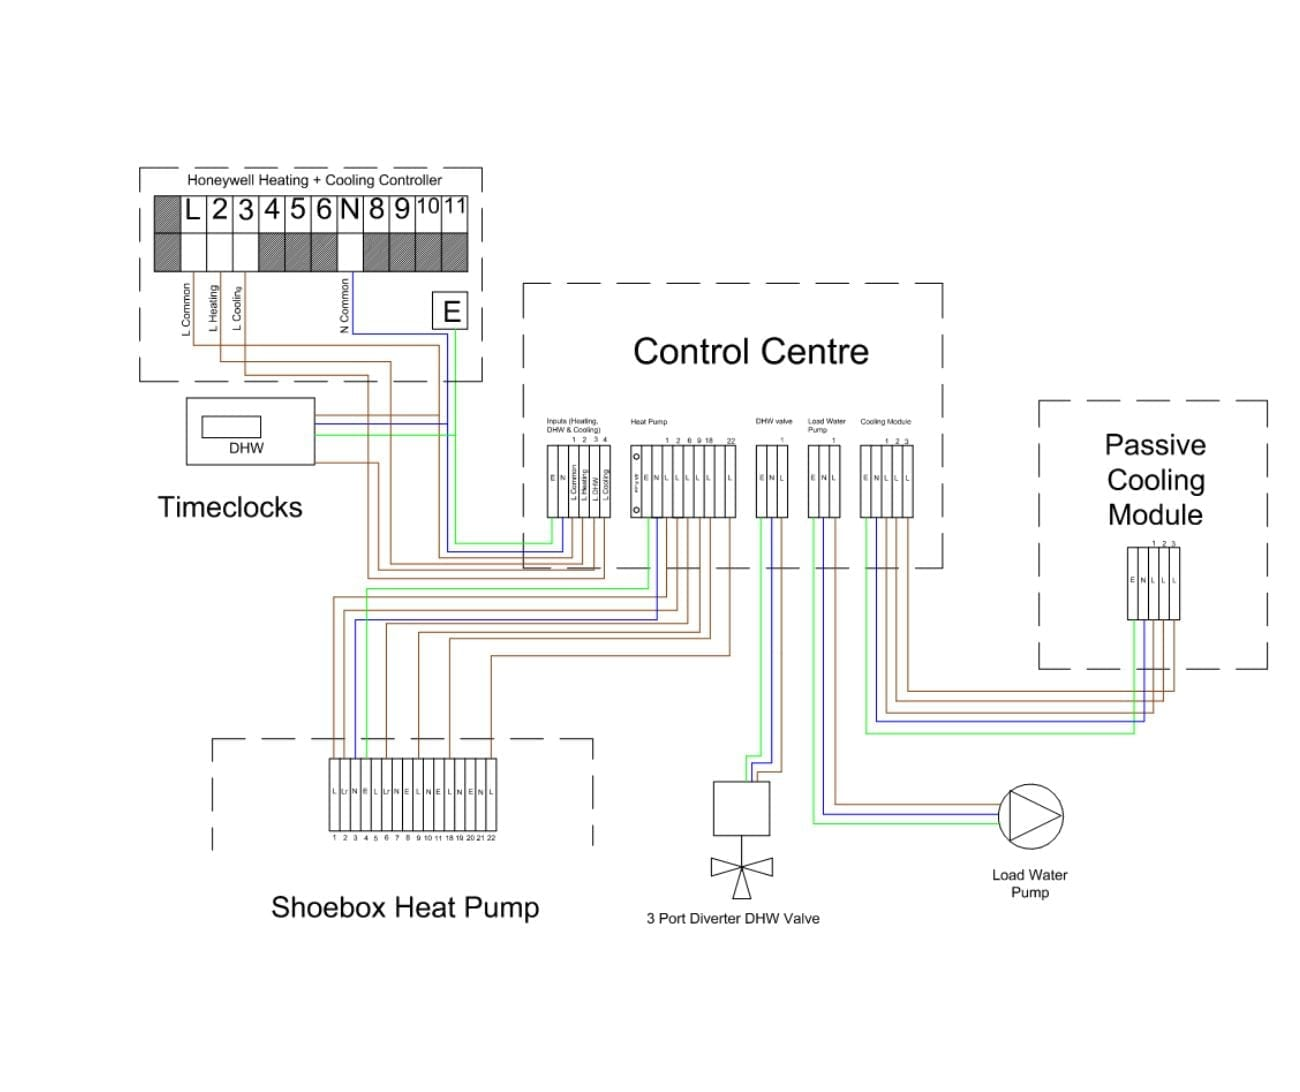 hight resolution of passive cooling module and control centre wiring centre schematic for kensa ground source heat pumps kensa has developed a passive cooling module and